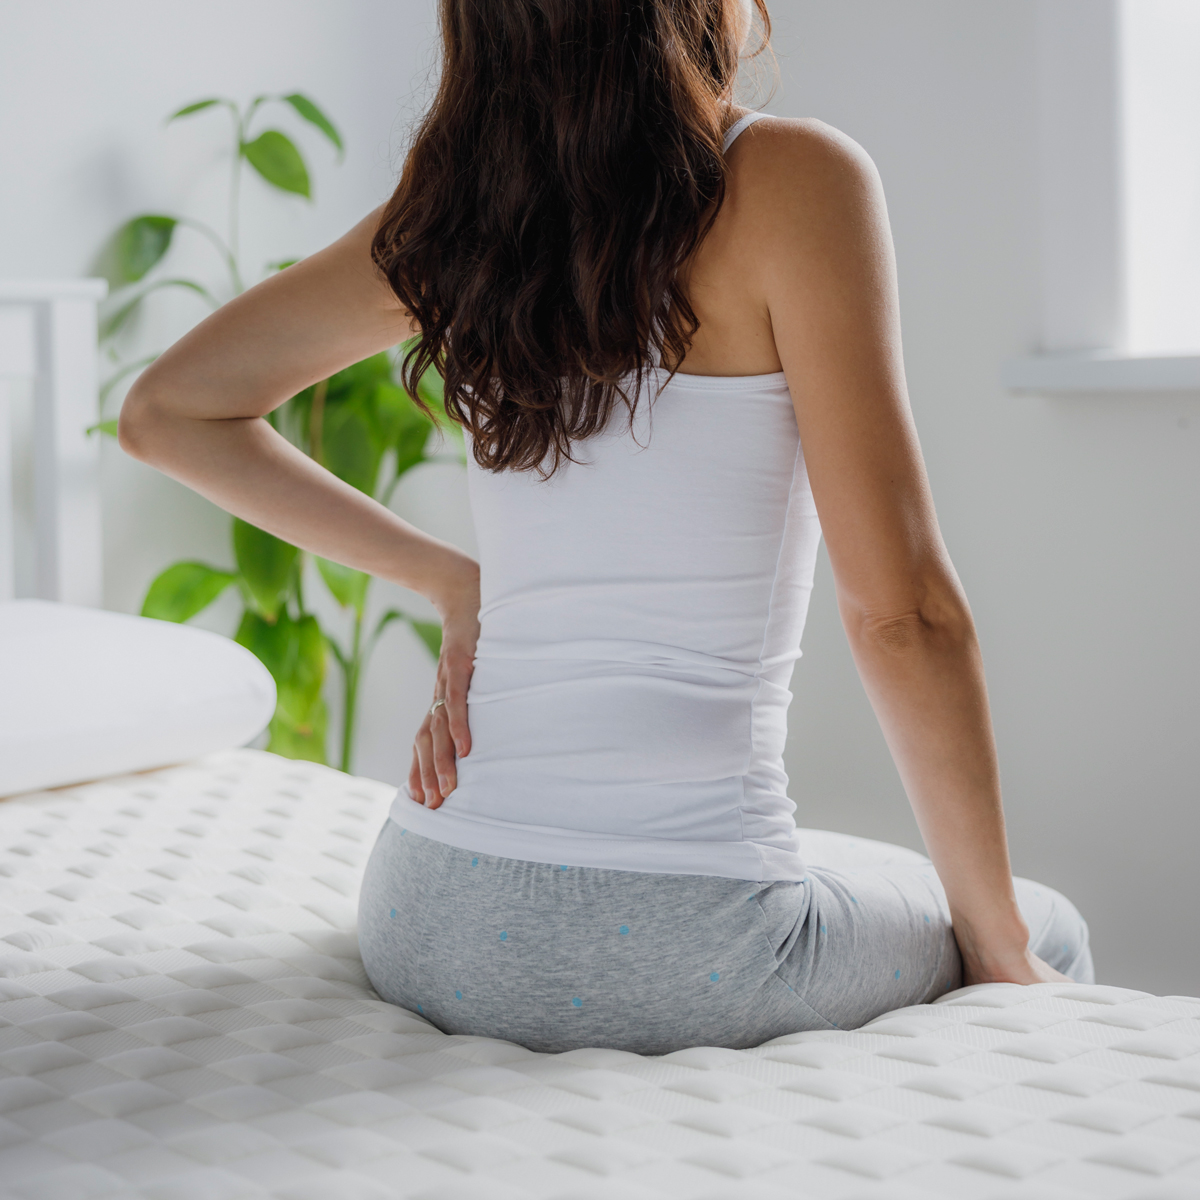 woman with back pain sitting on a bed